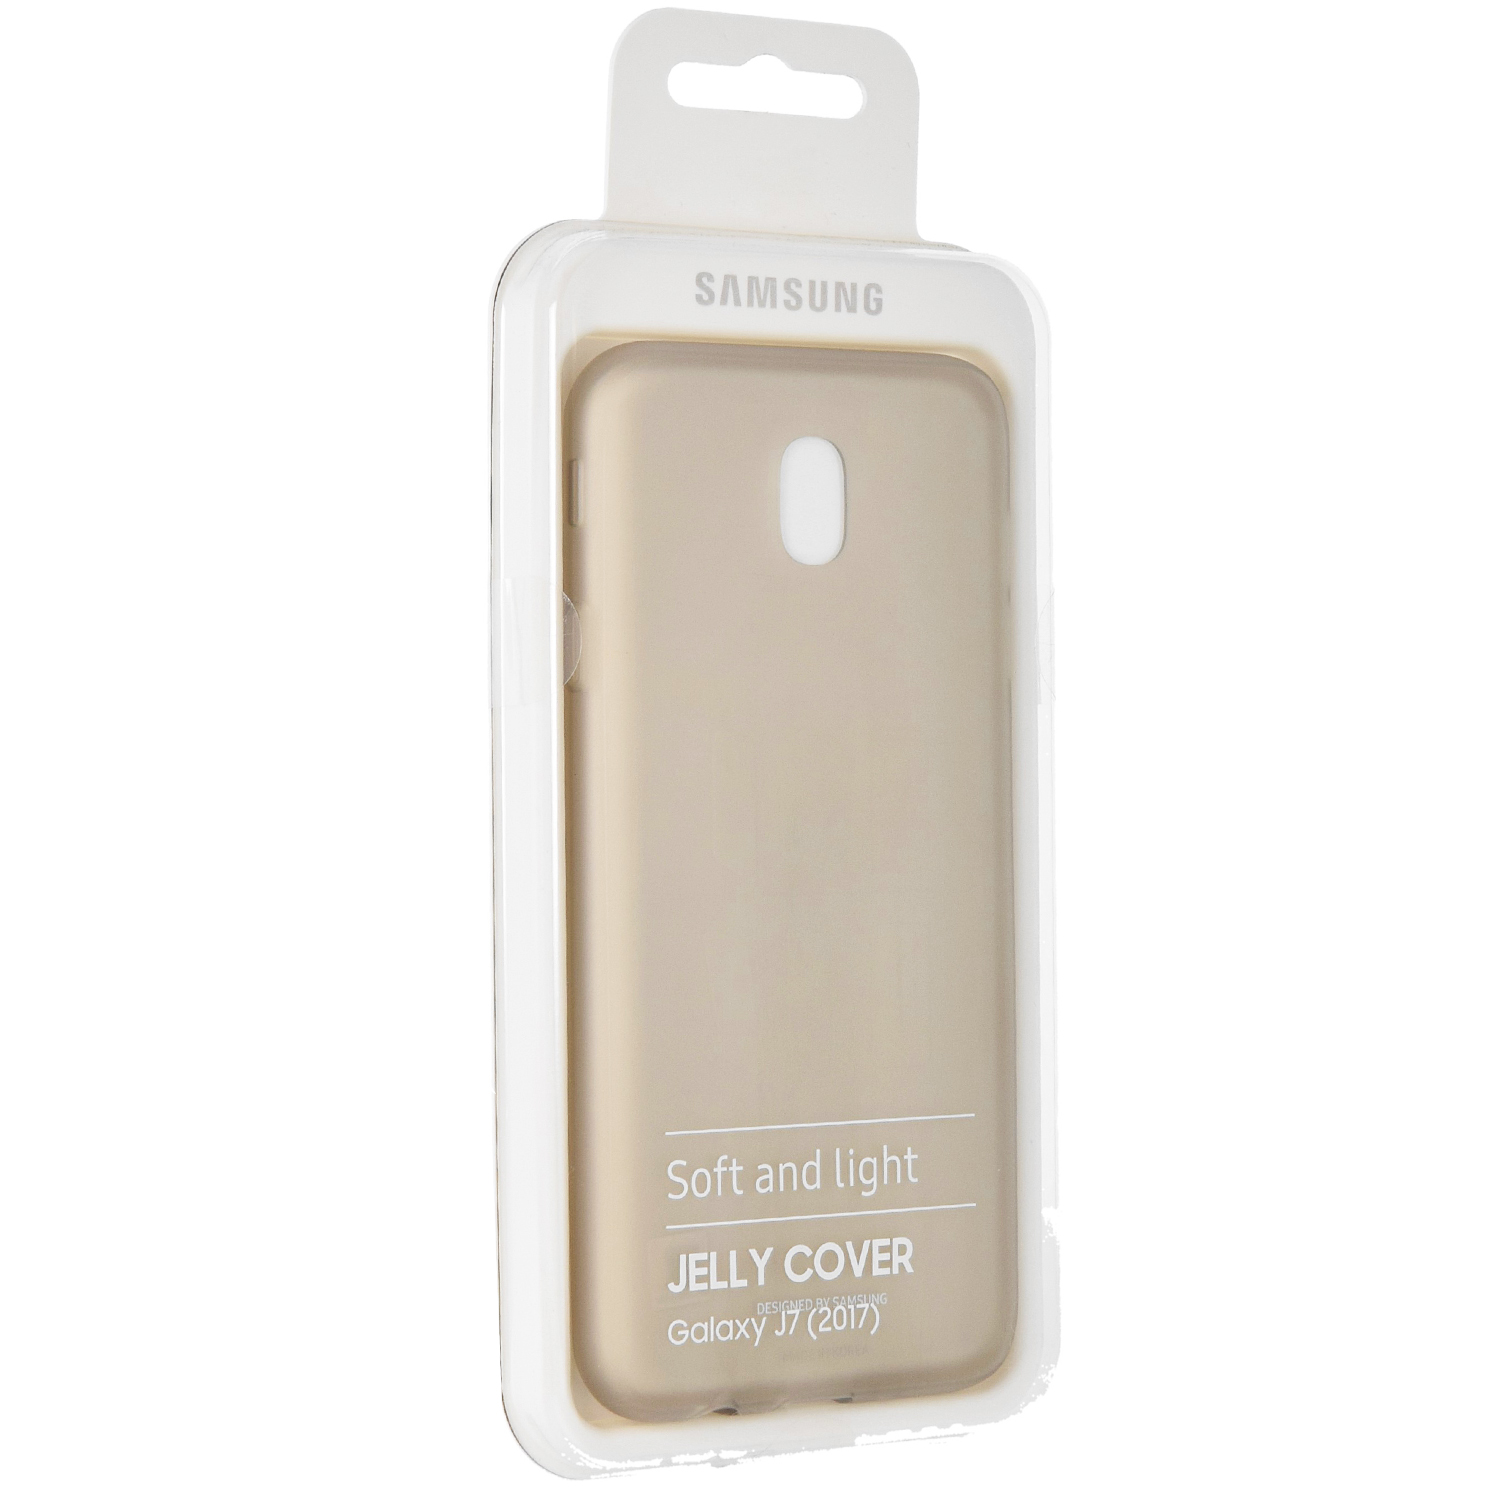 Etui Samsung Jelly Cover dla Galaxy J7 2017